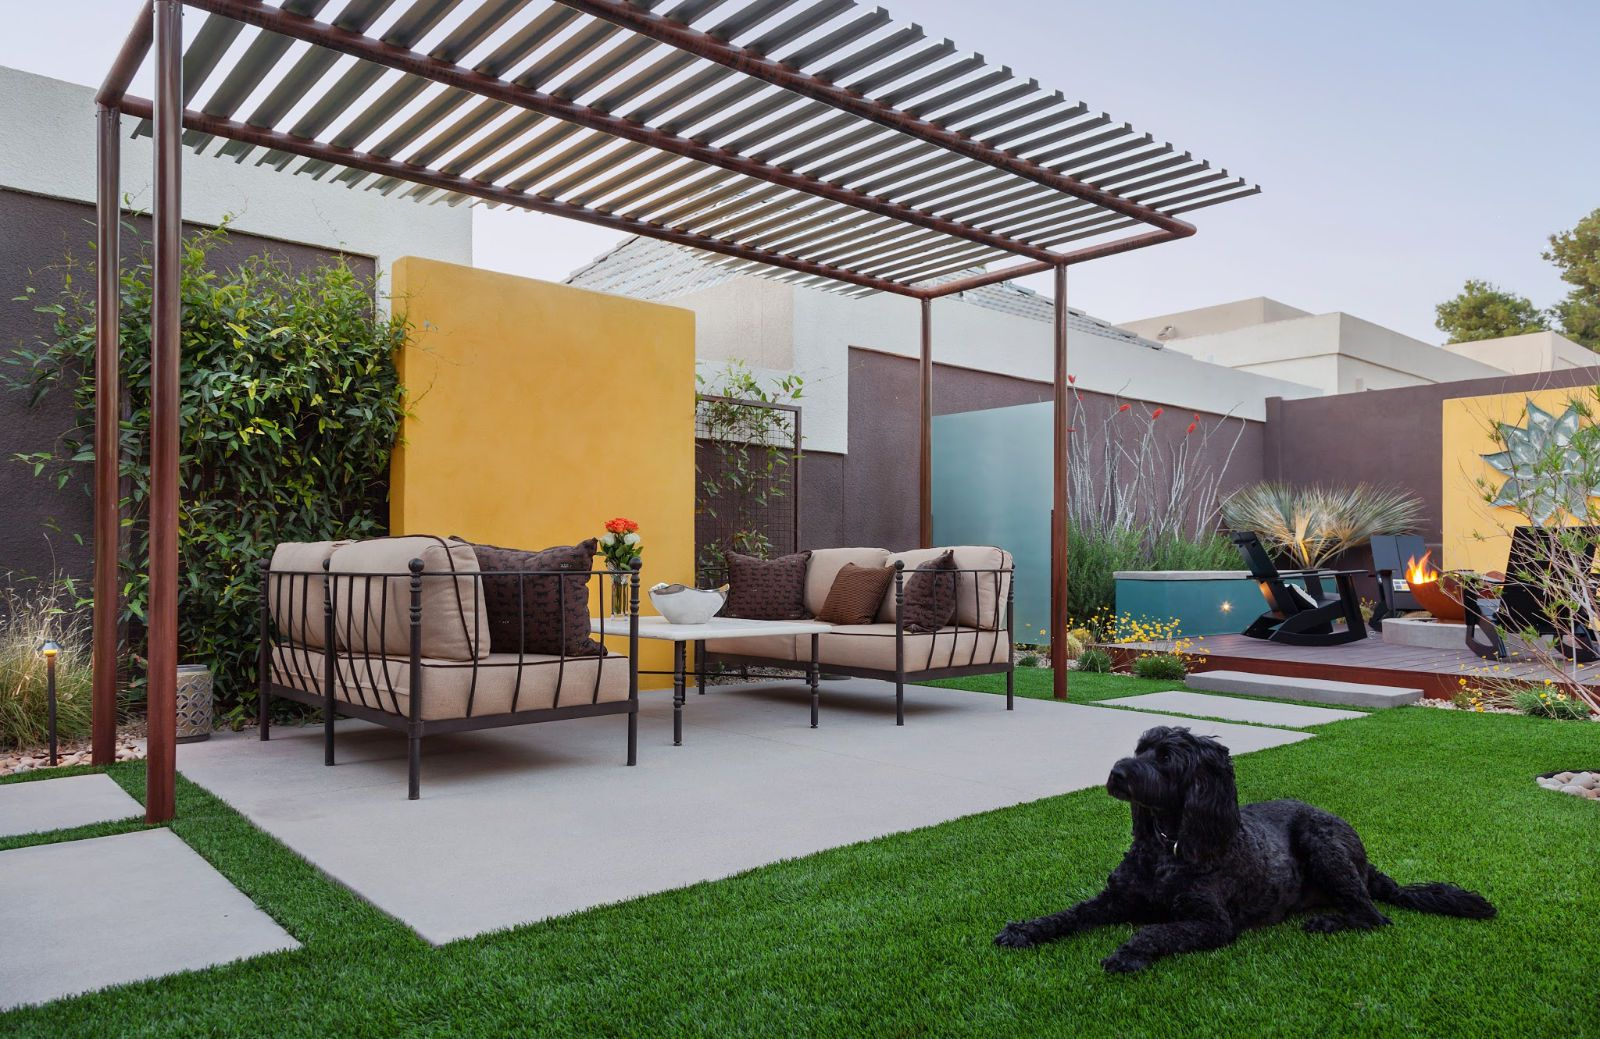 15 Beautiful Concrete Patio Ideas And Designs throughout Backyard Concrete Slab Ideas